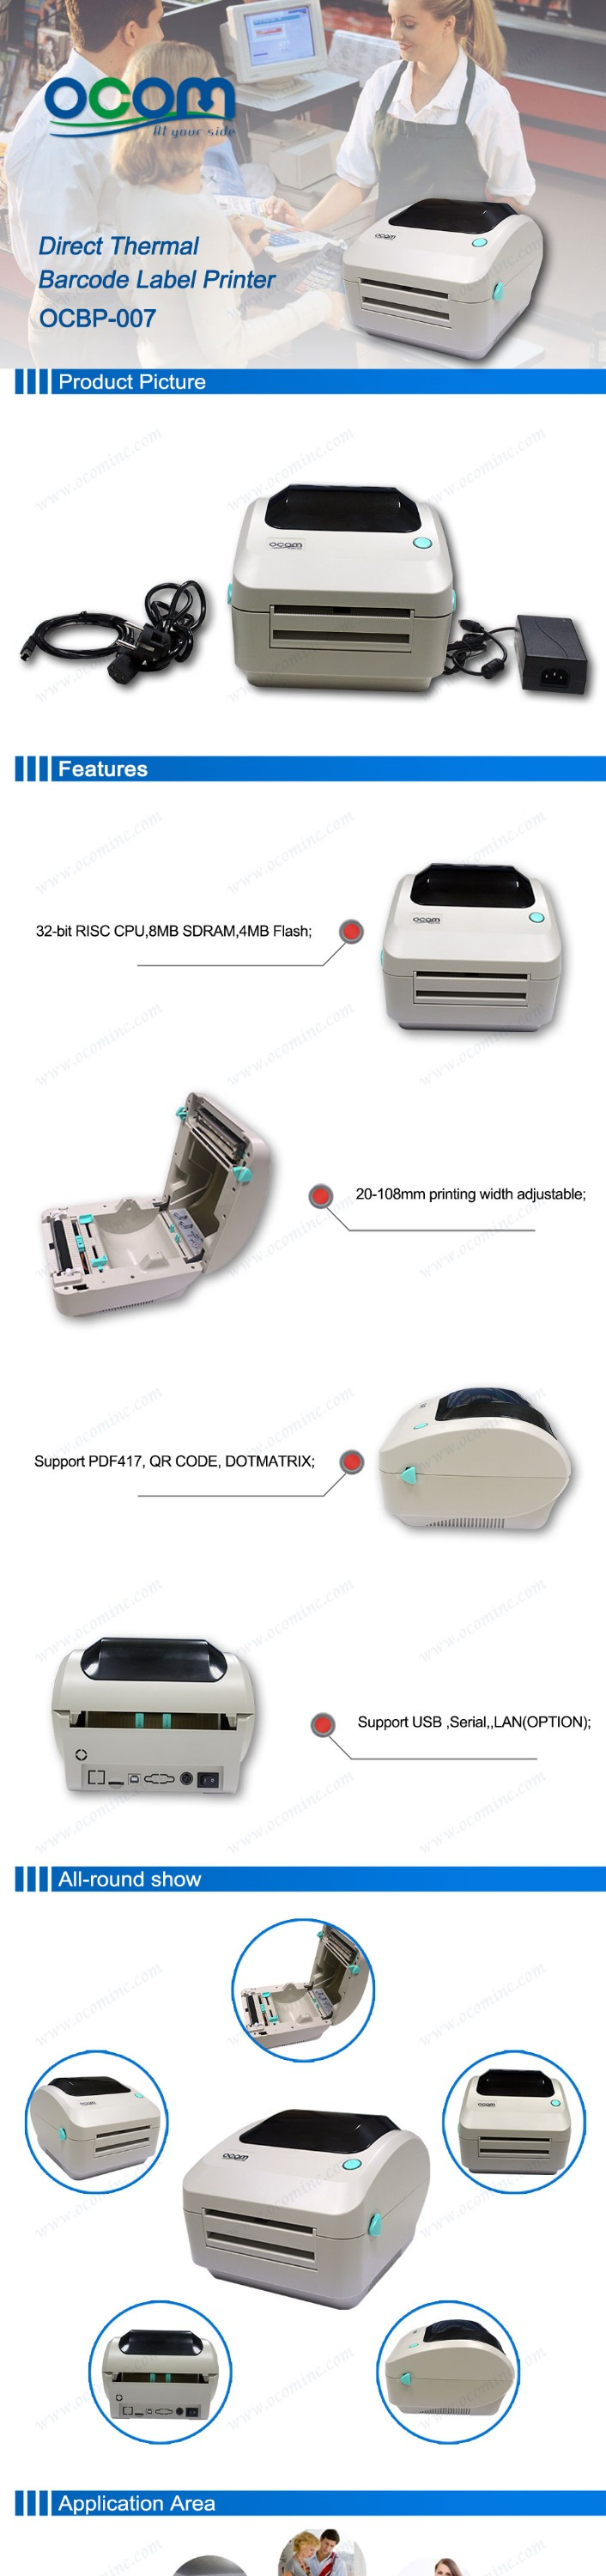 OCBP-007: cheap price 4 inch thermal barcode sticker printer dealers similiar with godex or argox